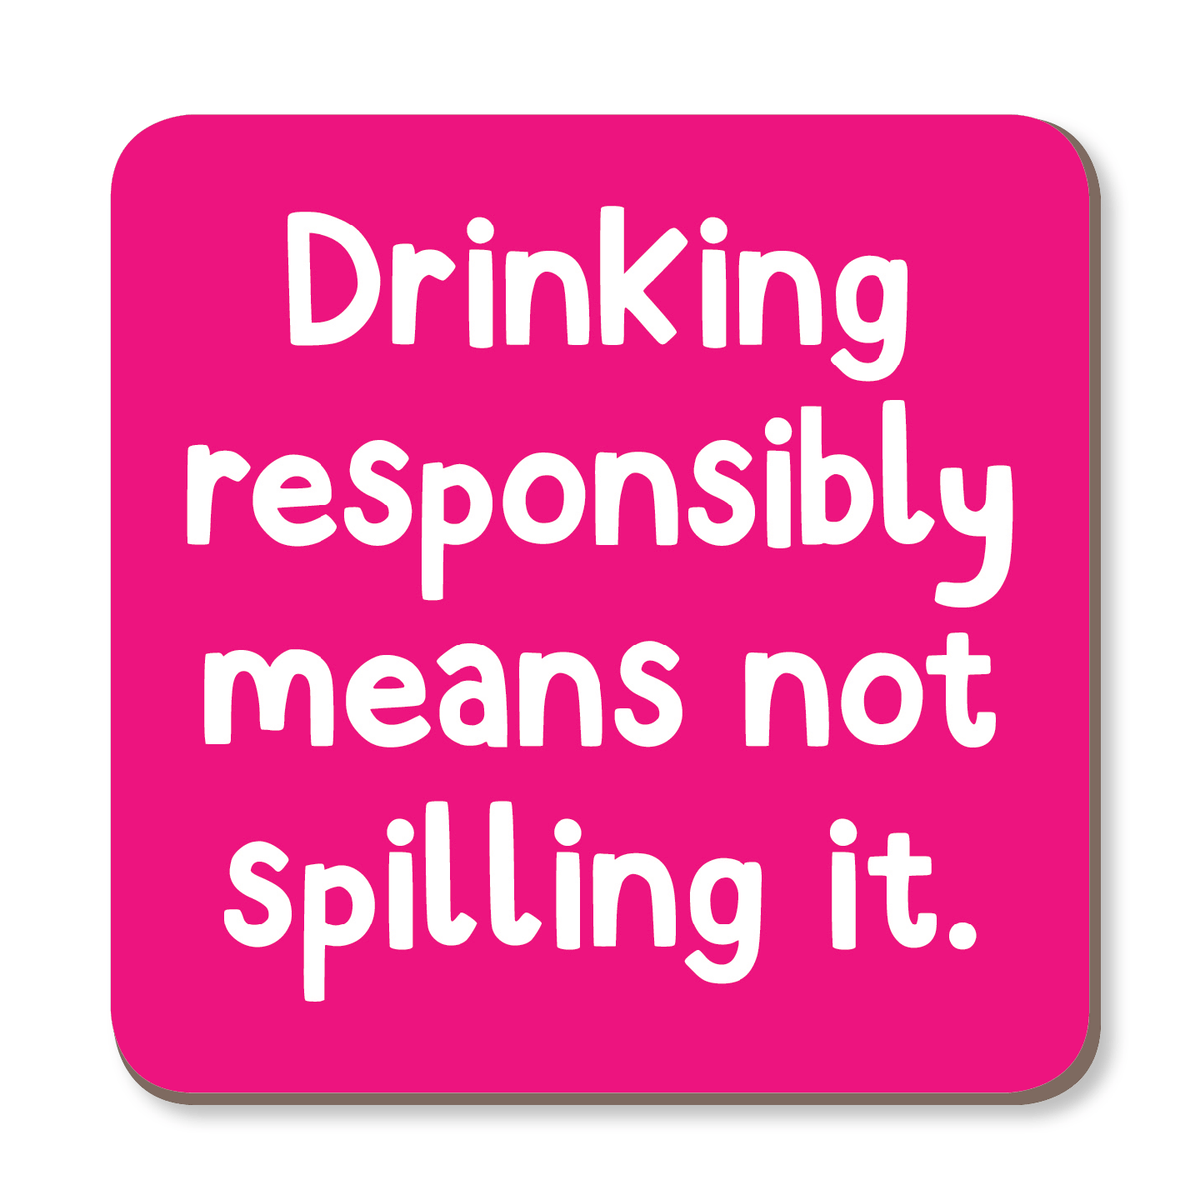 Drinking Responsibly Means Not Spilling It Coaster by The Spork Collection - Whale and Bird